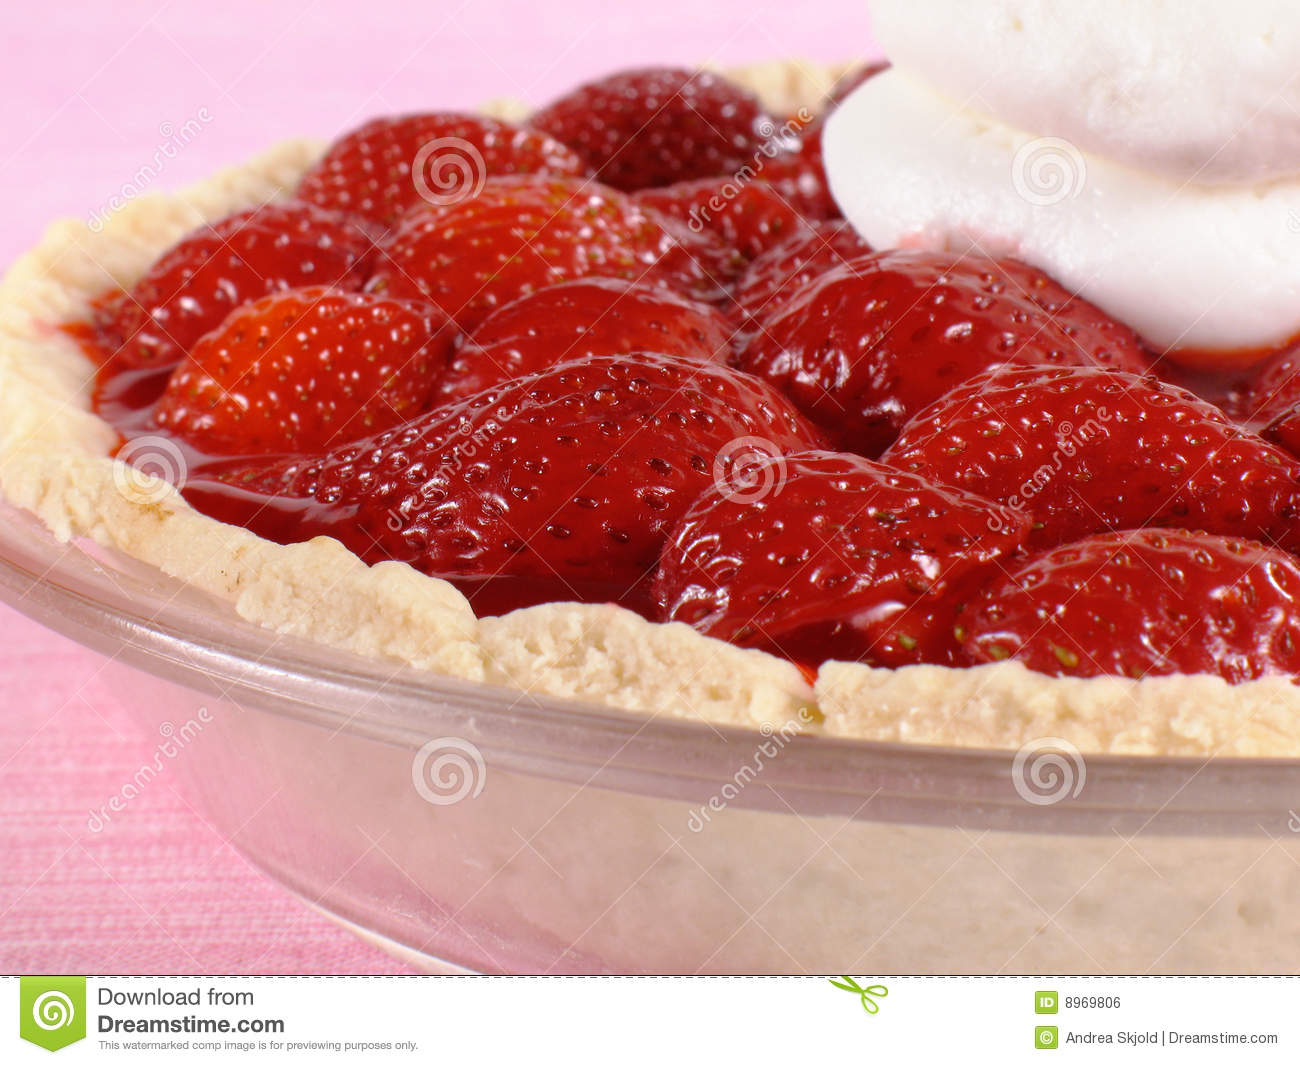 Deliciously sweet strawberry pie with whipped cream.